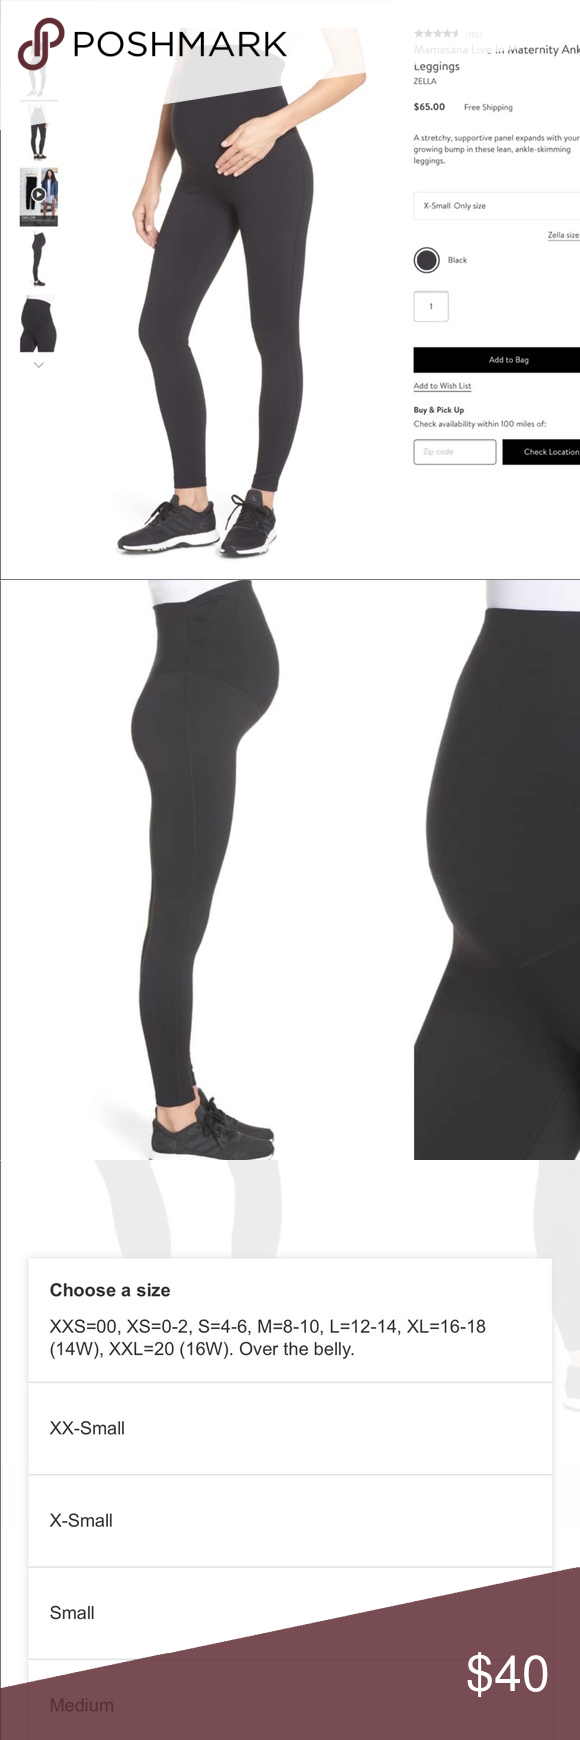 3677852ec8b4b7 Zella Mamasana Live In Maternity Ankle Leggings M These have been sold out  at Nordstrom off and on all winter. Purchased the Medium as that's what I  wear in ...